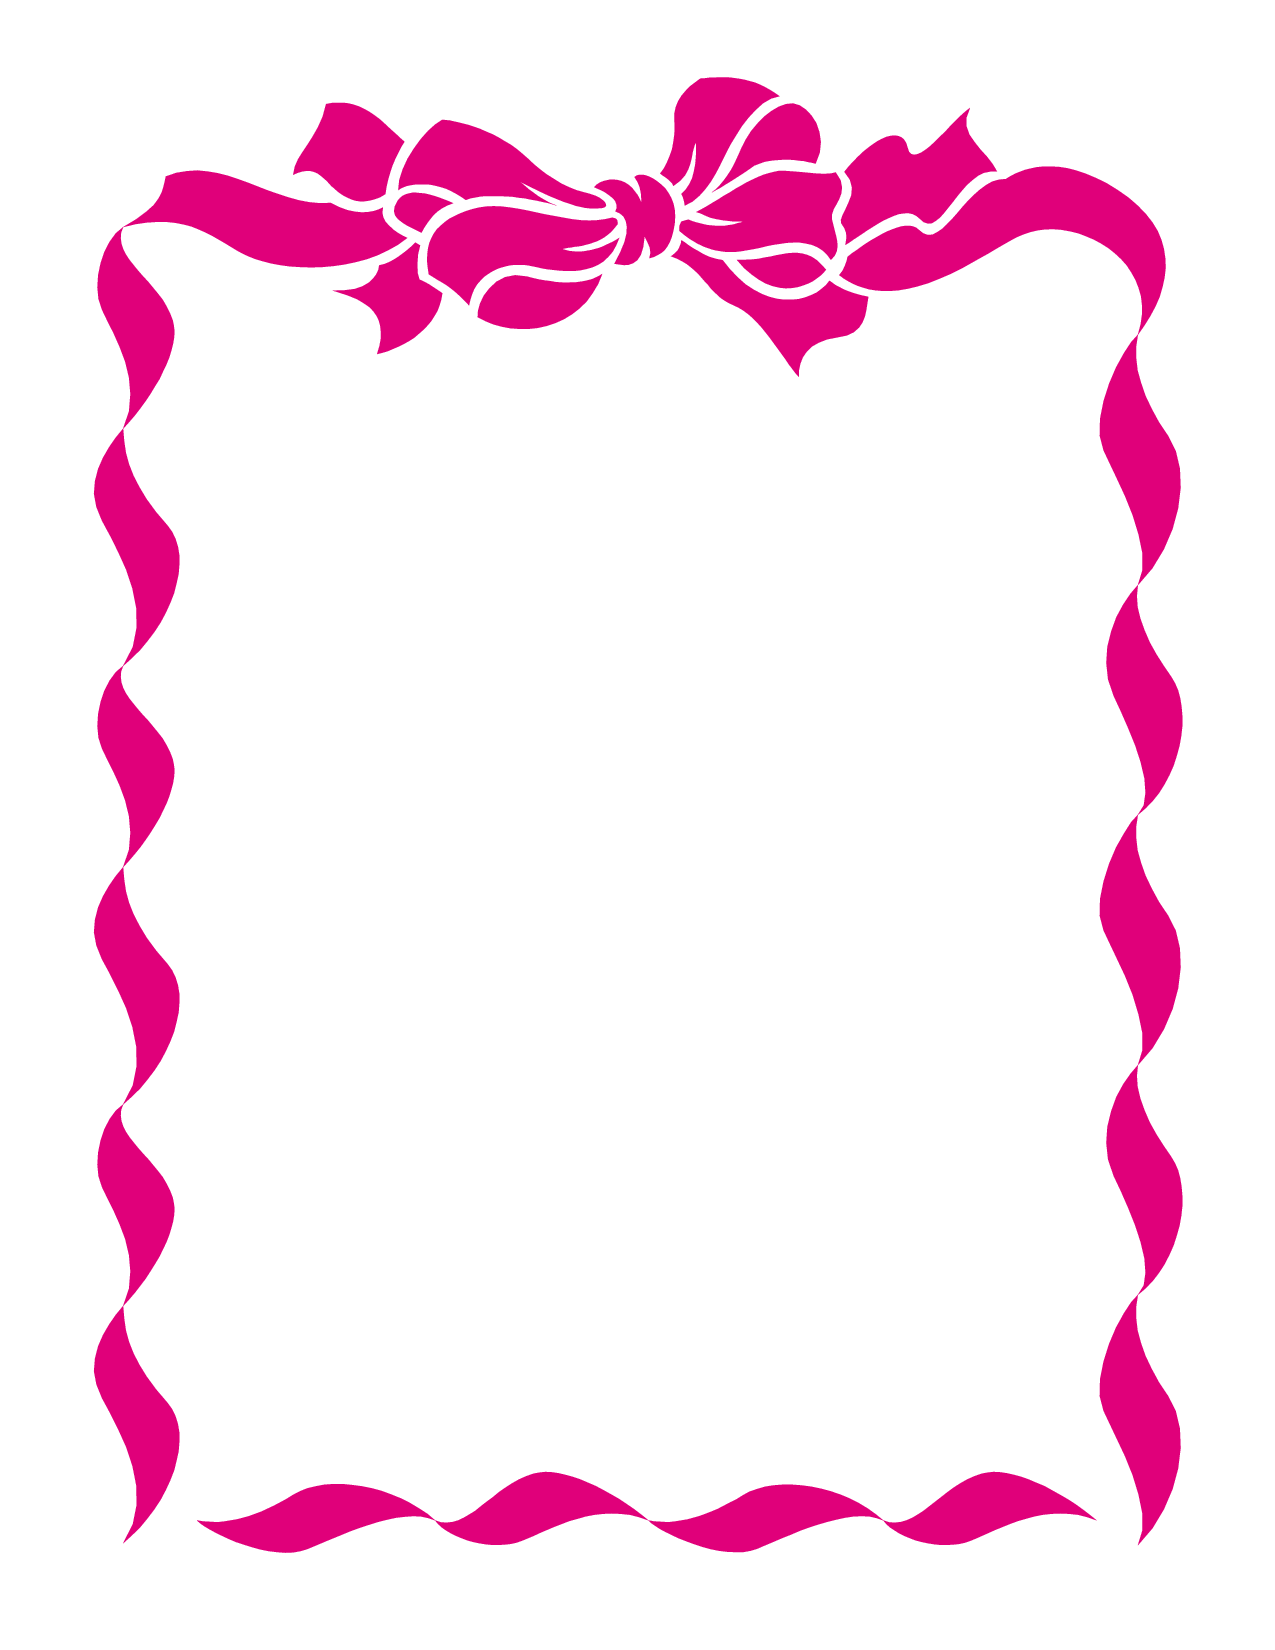 Breast Cancer Ribbon Template - ClipArt Best